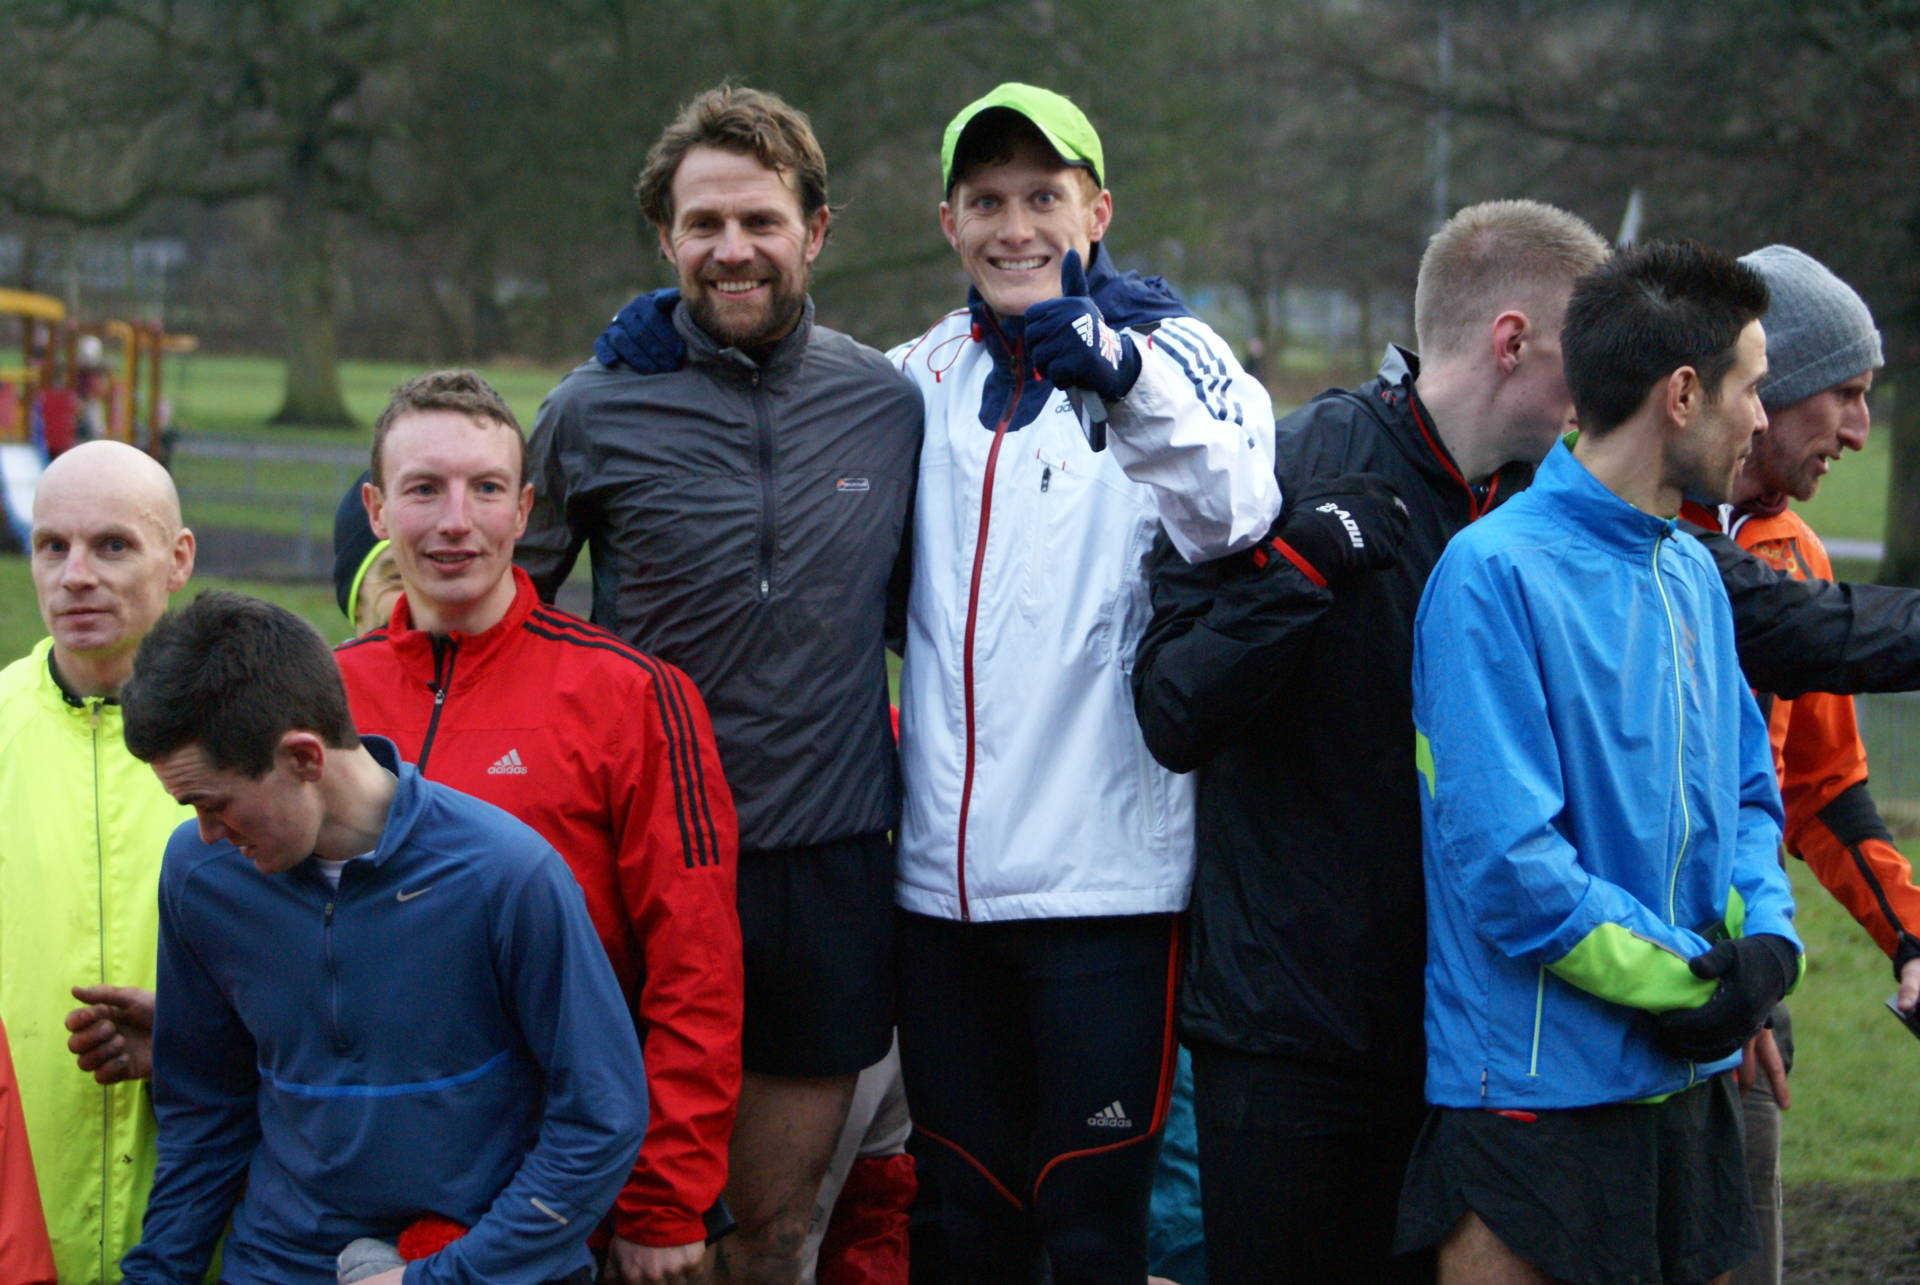 Lancashire Cross Country Championships – Team & Individual Wins for the Harriers